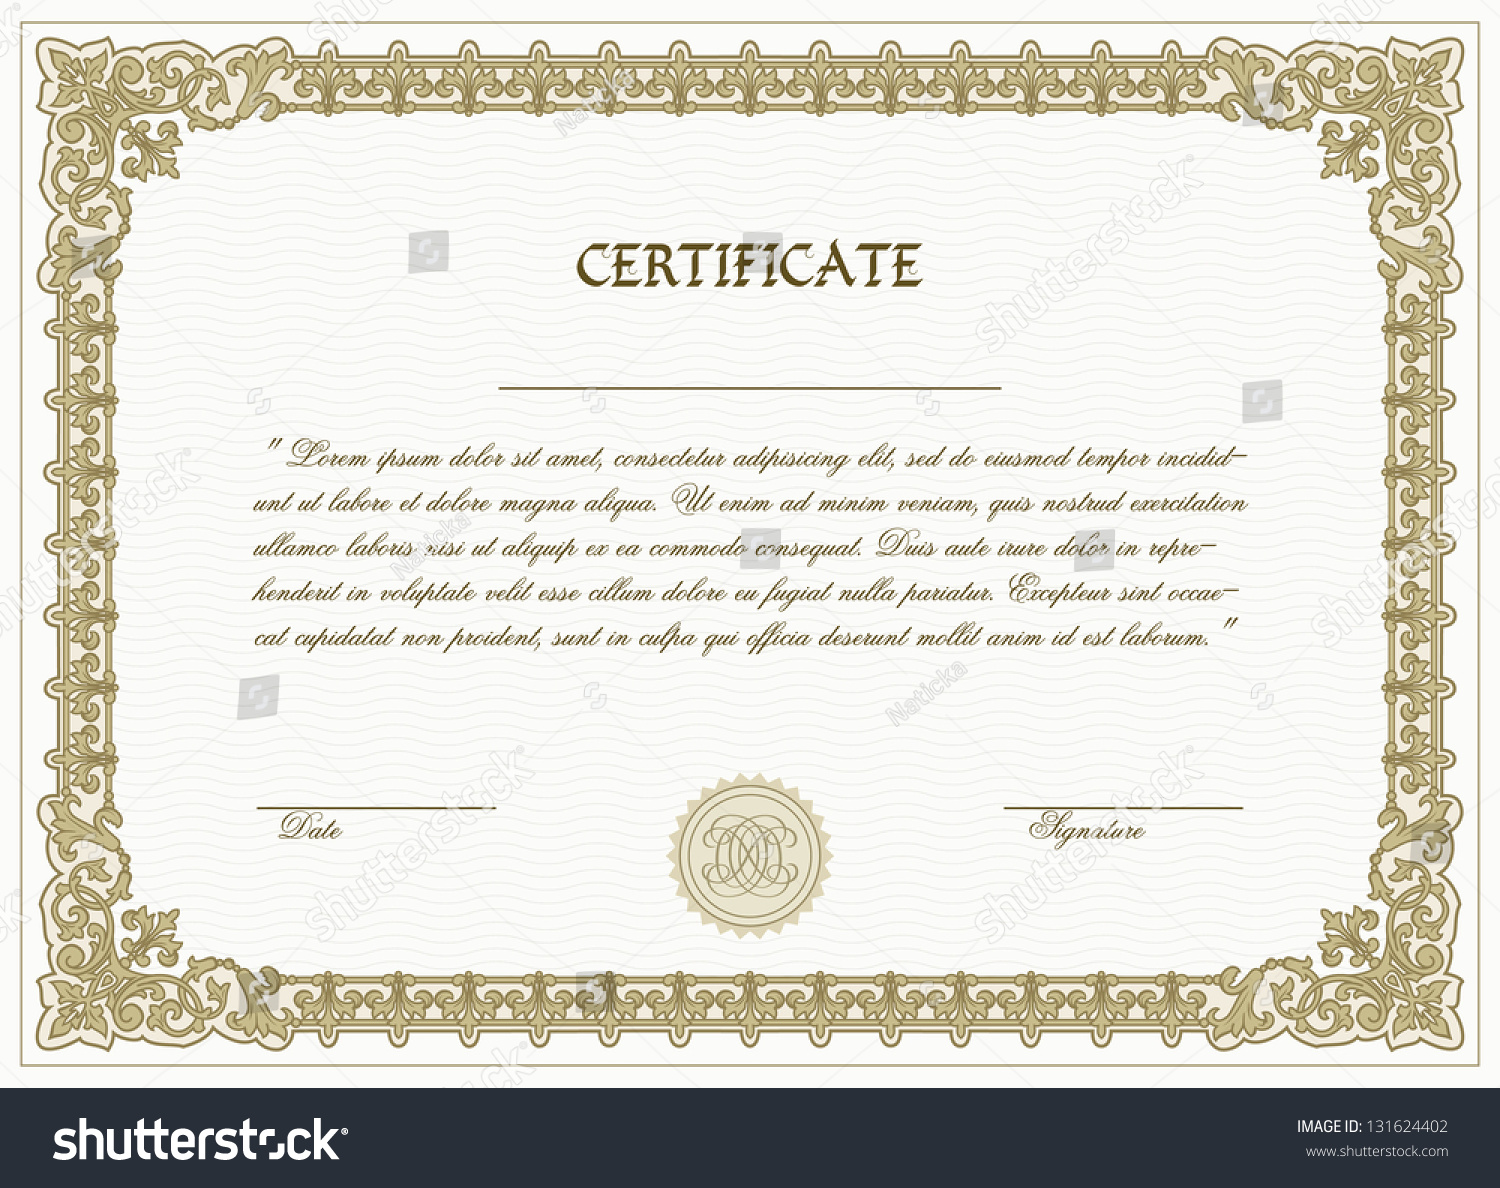 customizable gift certificate template